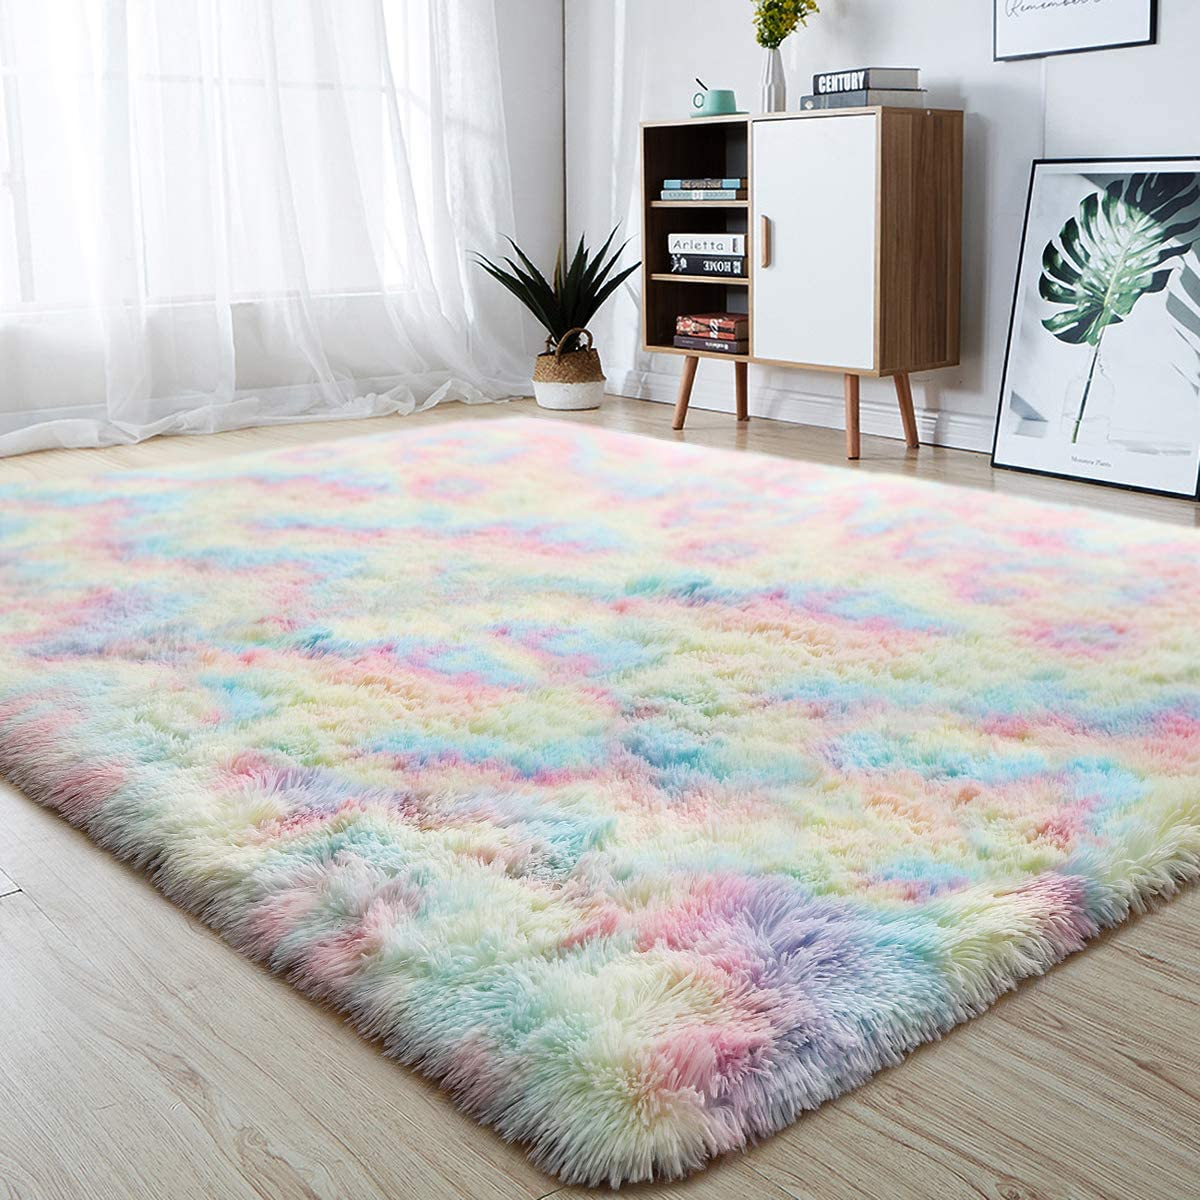 junovo Soft Rainbow Area Rugs for Girls Room, Fluffy Colorful Rugs Cute Floor Carpets Shaggy Playing Mat for Kids Baby Girls Bedroom Nursery Home Decor, 6ft x 9ft